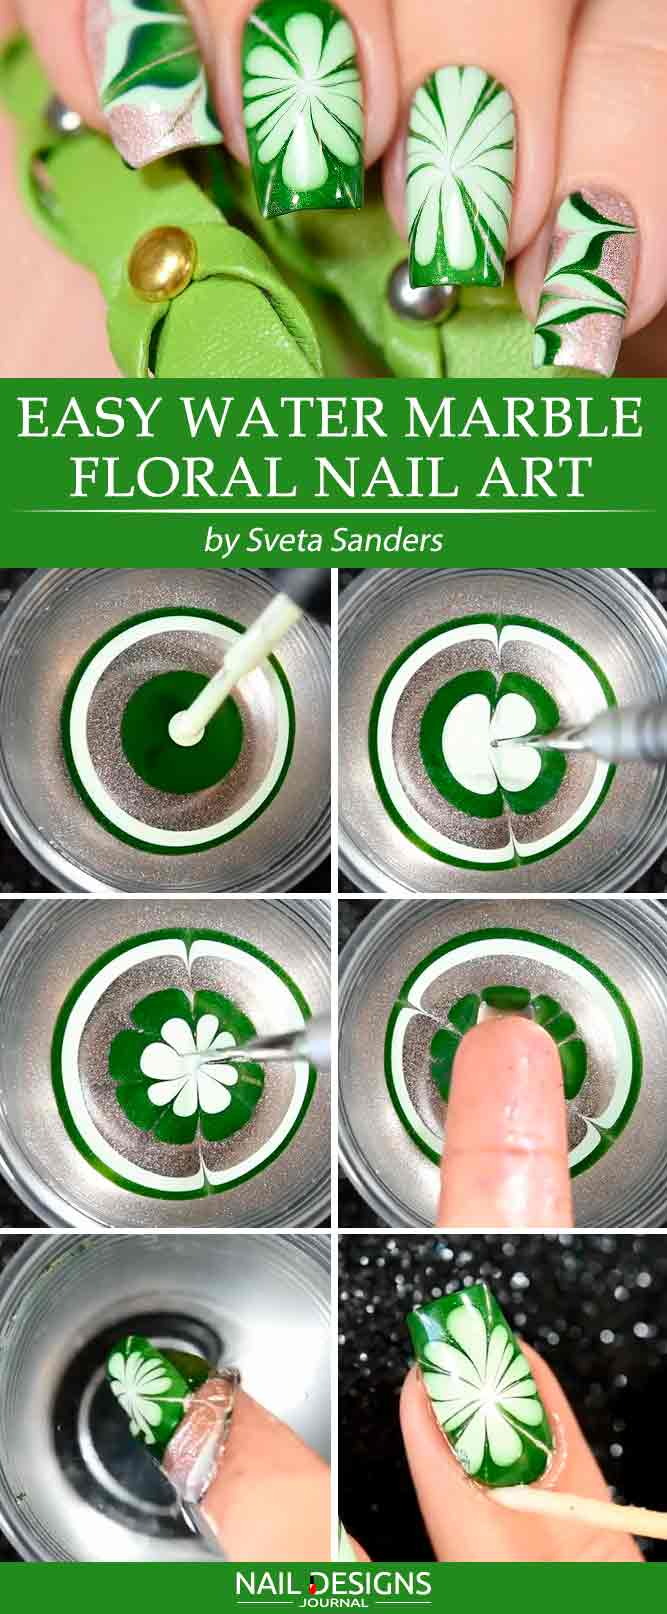 Easy Water Marble Floral Nail Art